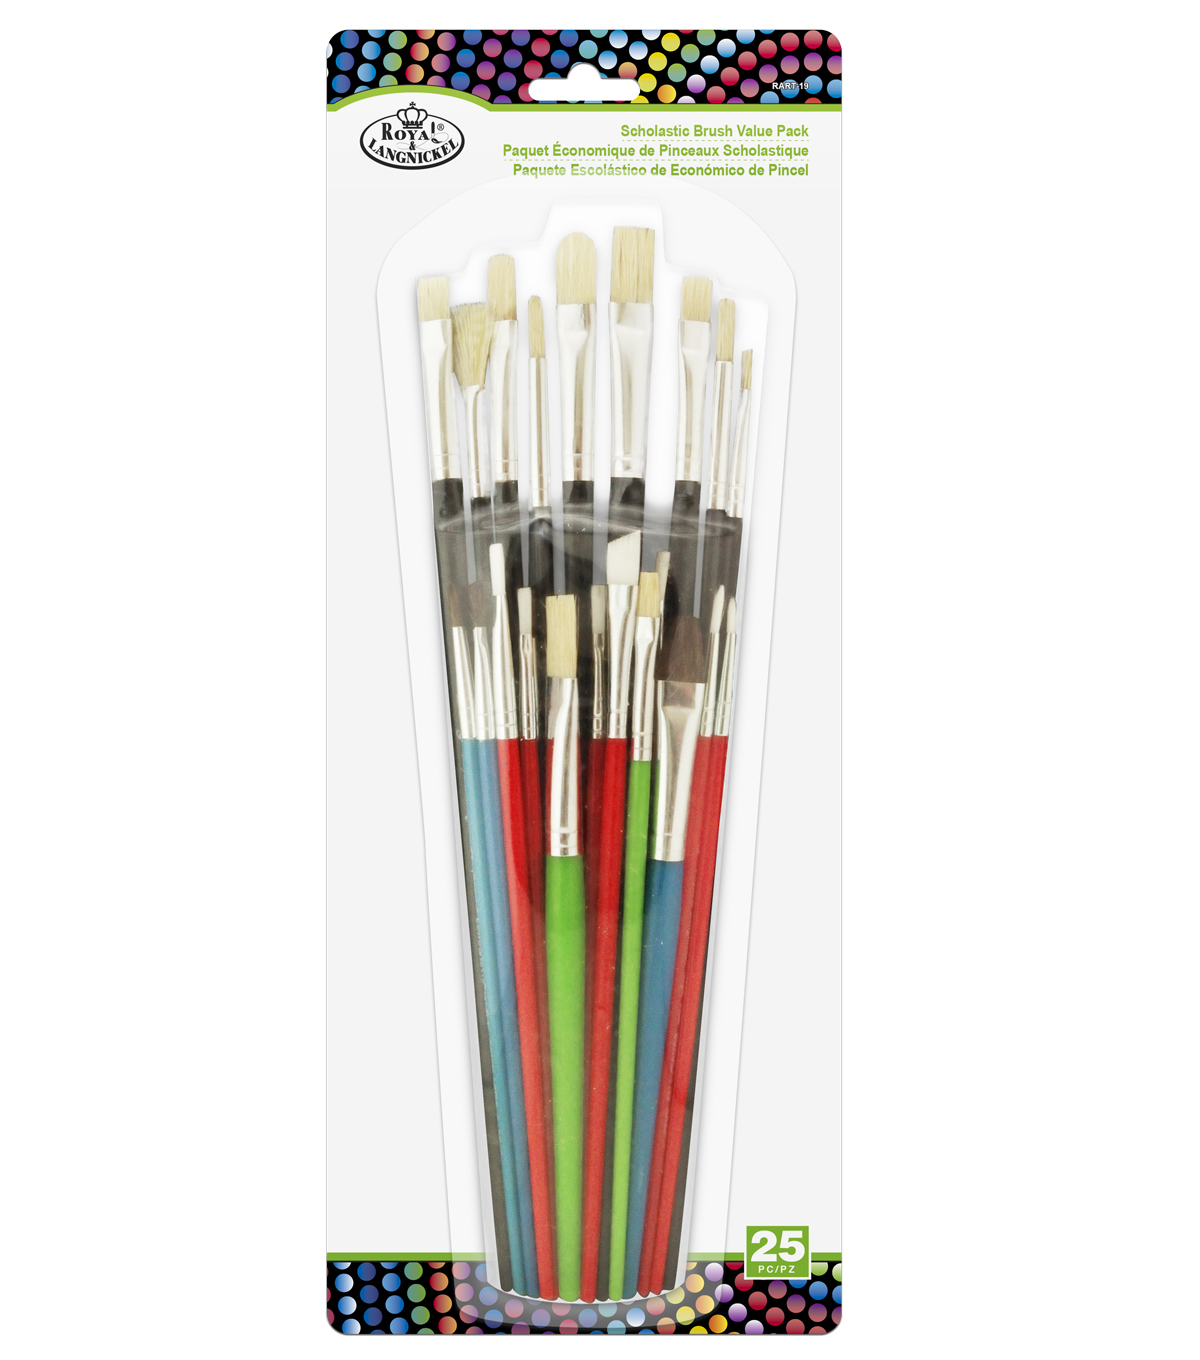 Royal & Langnickel® Schoolastic Brush Value Pack 25pk